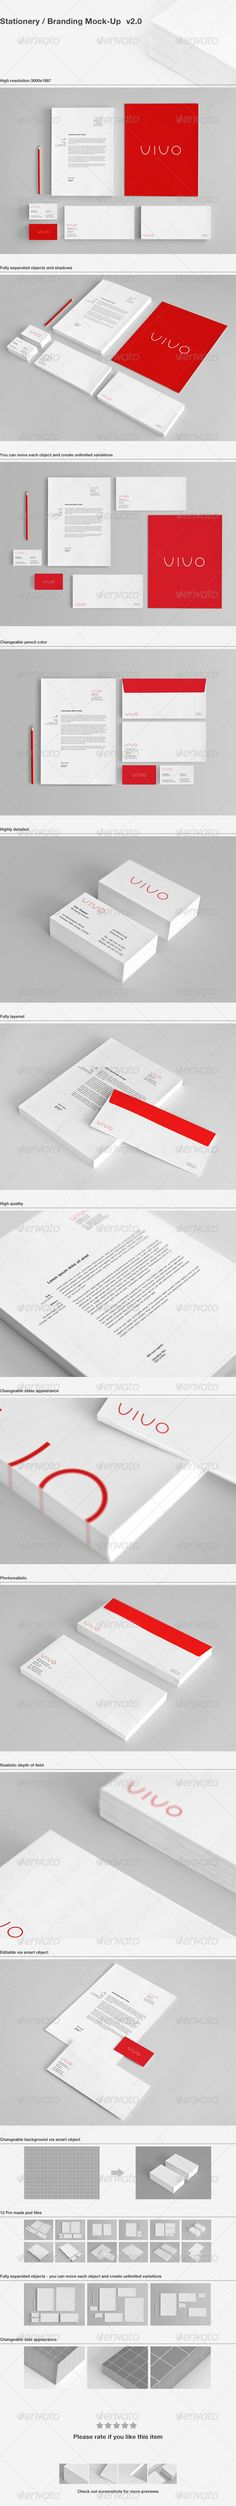 Stationery Branding Mock-Up free psd resources to download  http://psdsonar.com/stationery-branding-mock-up/